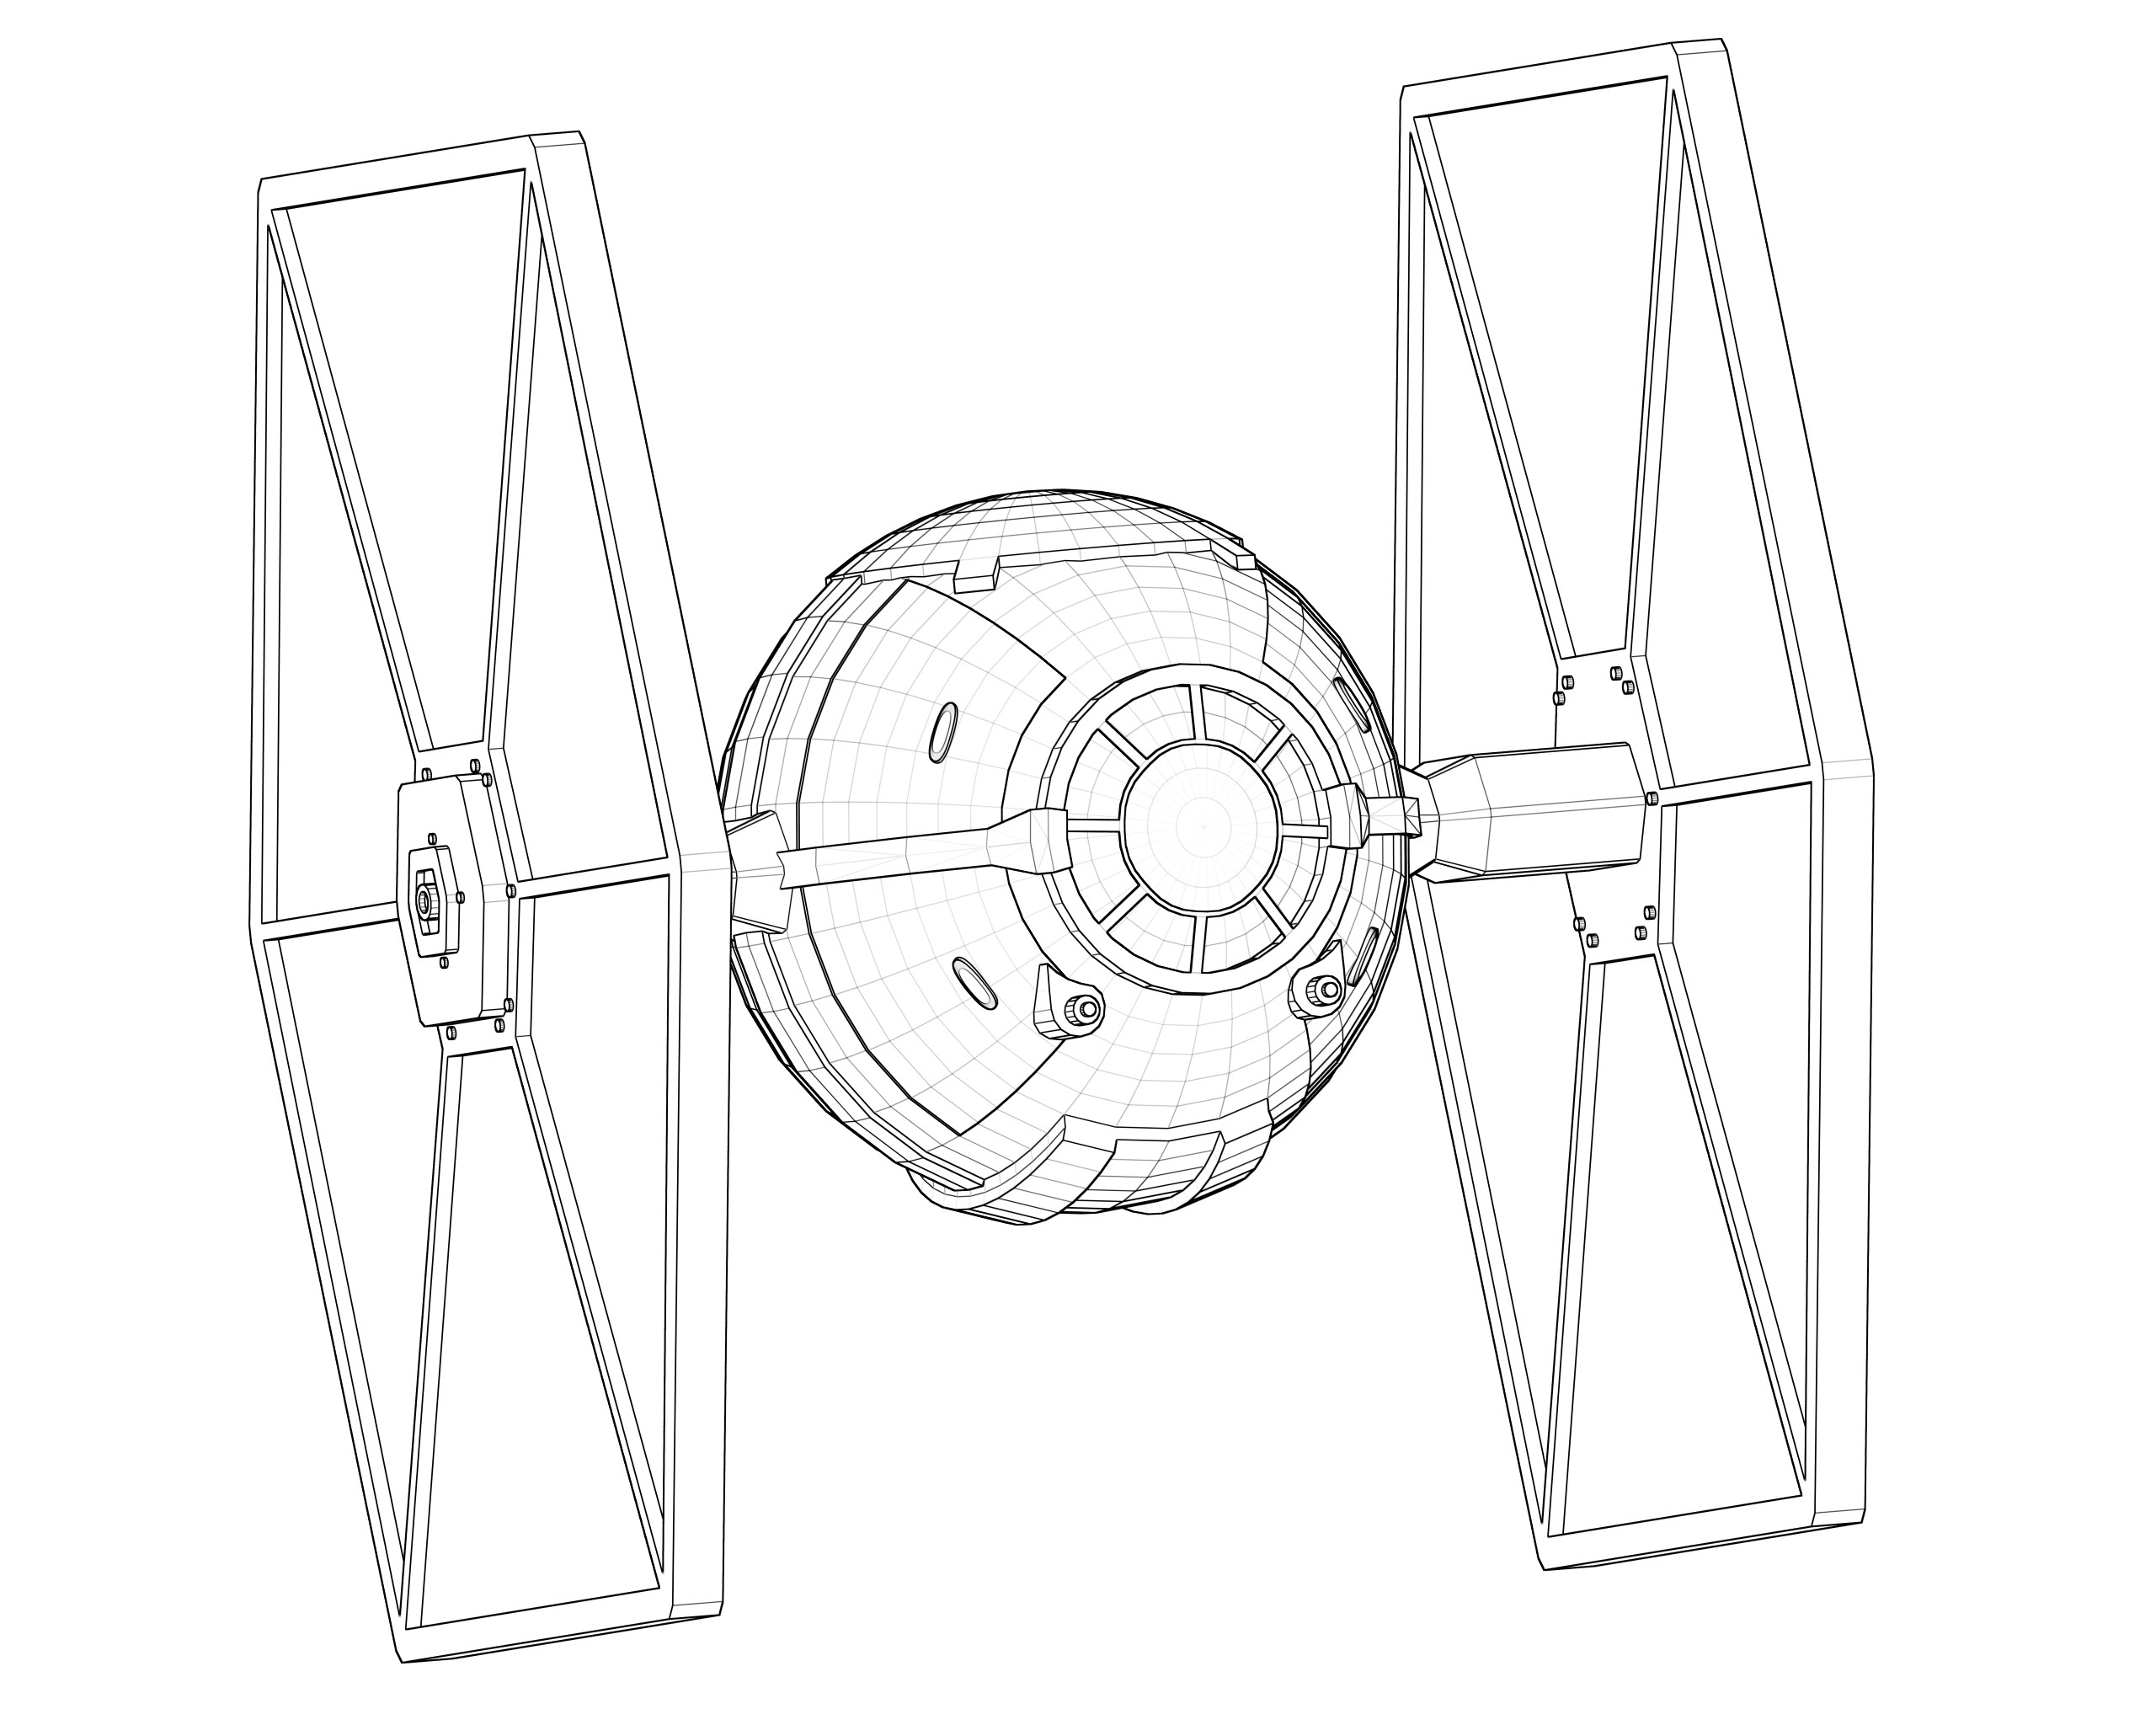 Star Wars Tie Fighter Drawing At Getdrawings Com Free For Personal